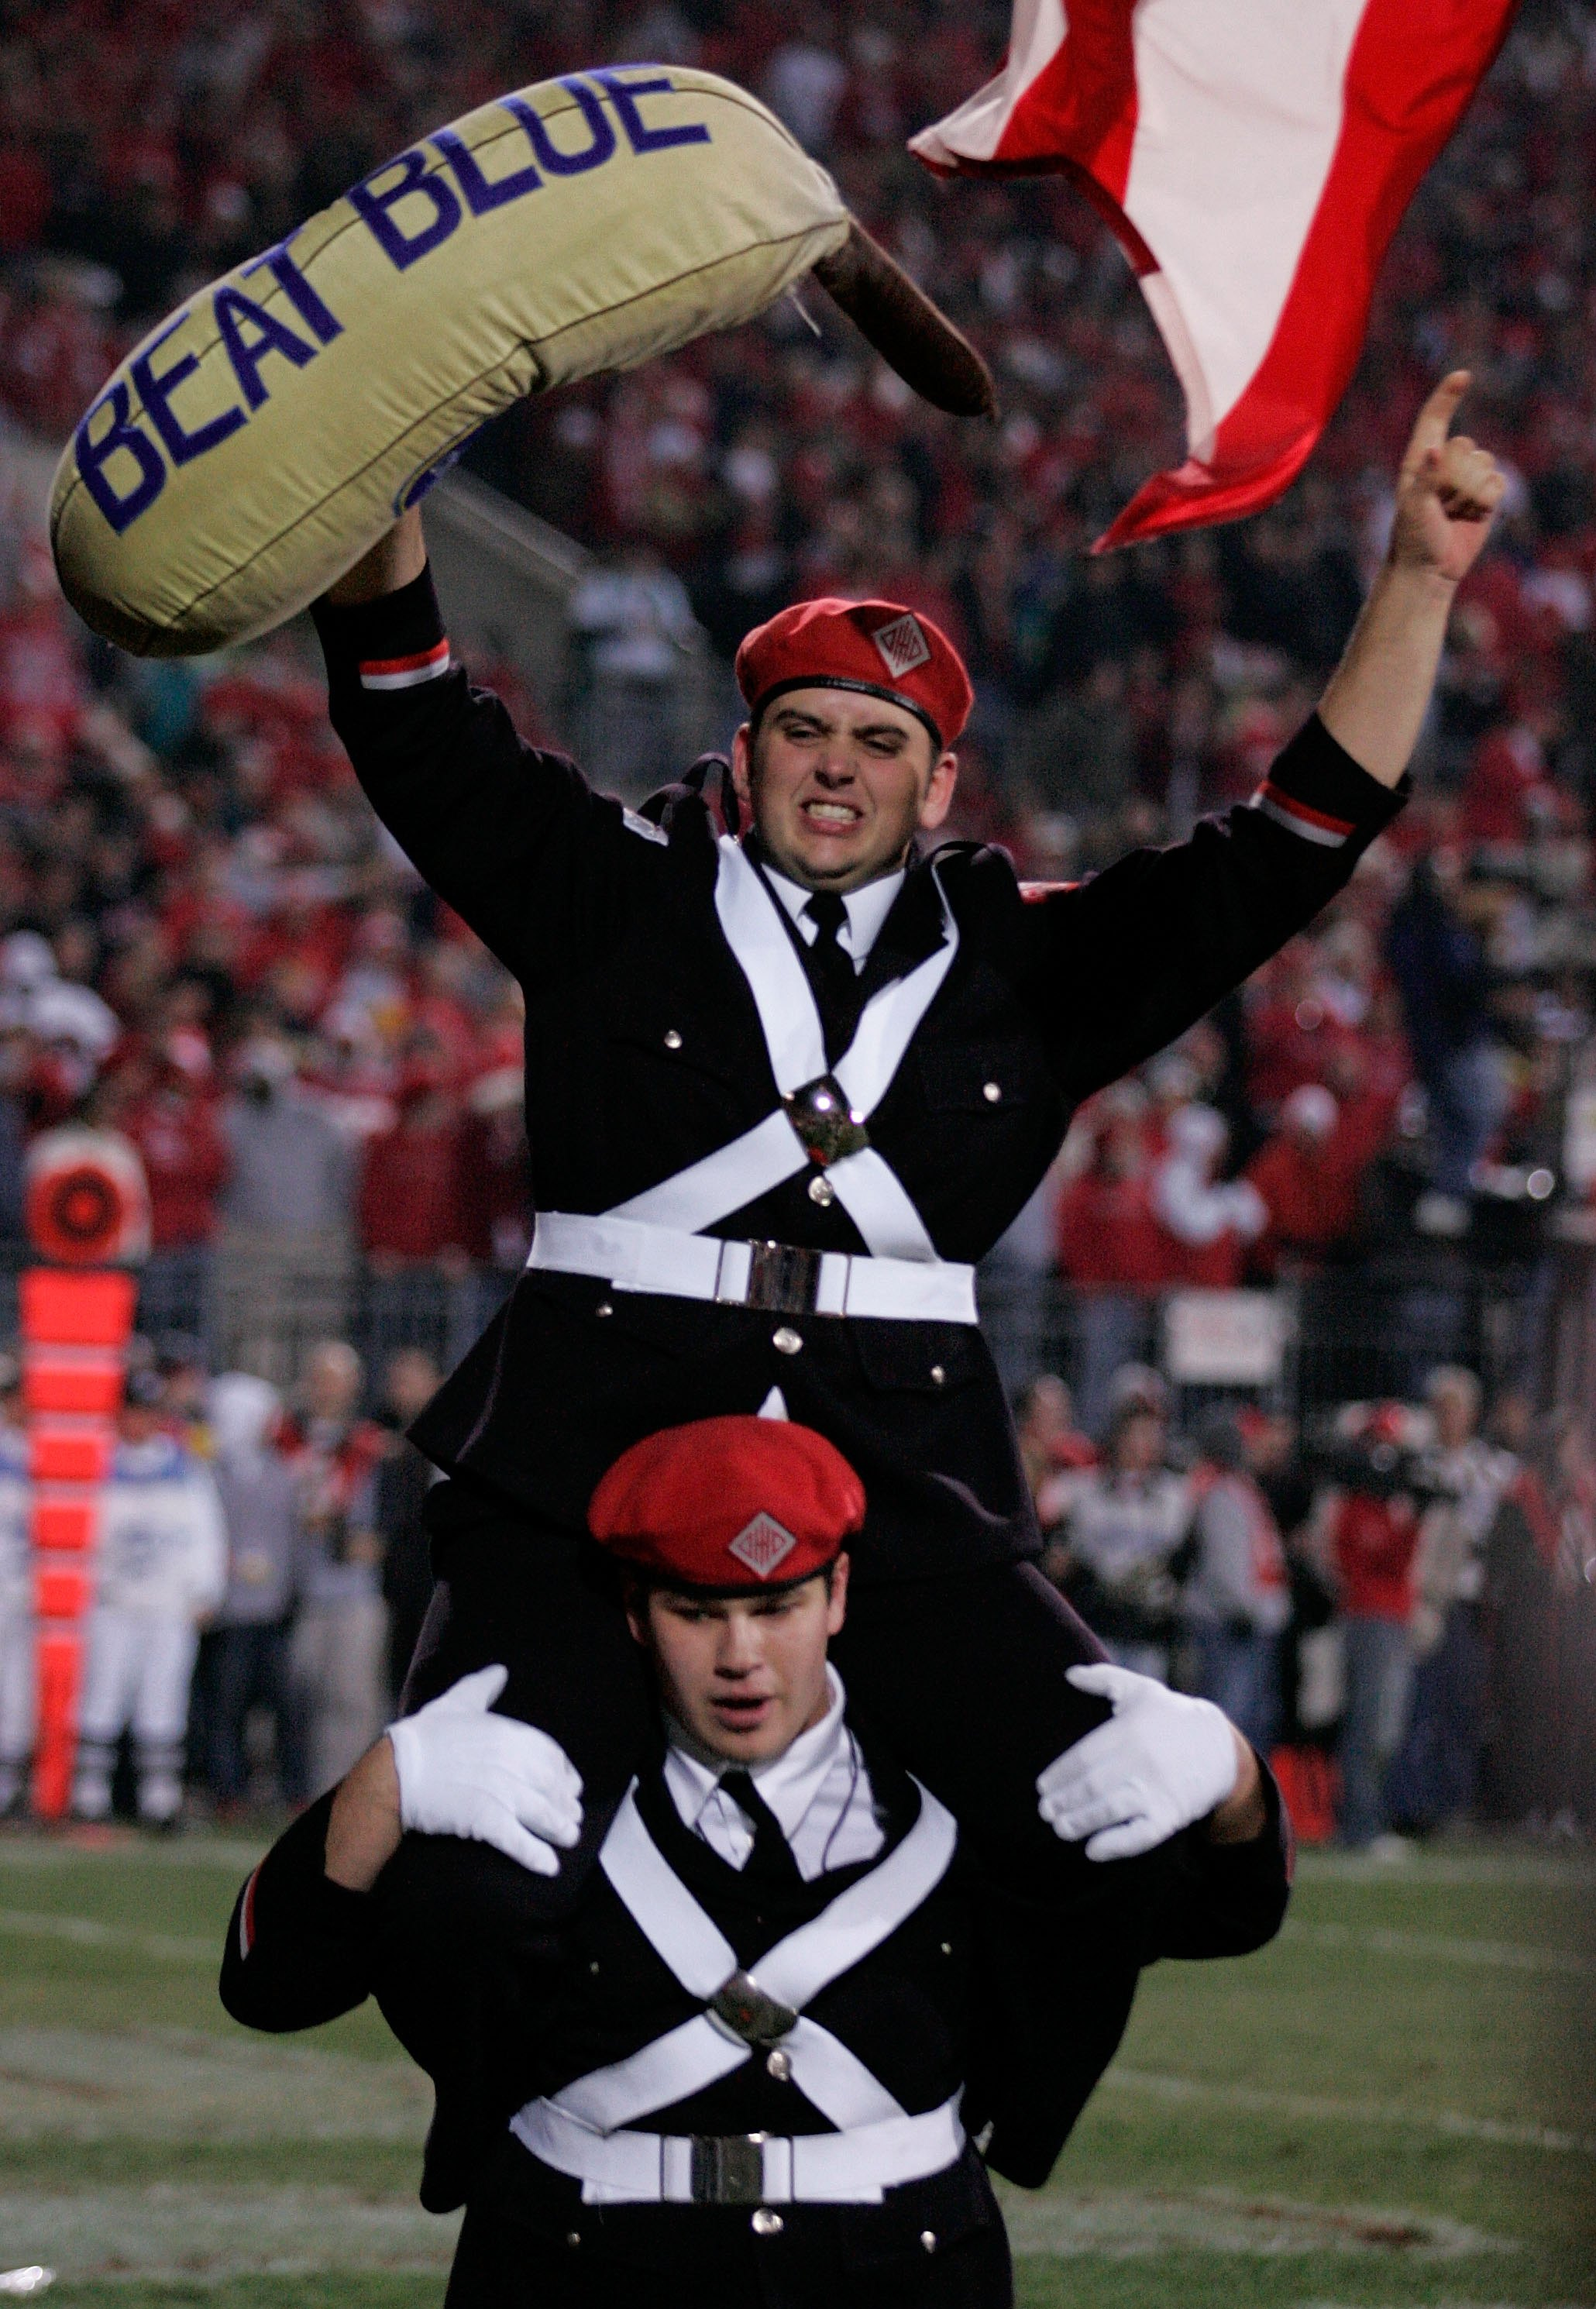 COLUMBUS, OH - NOVEMBER 18:  Bands members of the Ohio State Buckeyes support their team against the Michigan Wolverines November 18, 2006 at Ohio Stadium in Columbus, Ohio. Ohio State won 42-39. (Photo by Gregory Shamus/Getty Images)